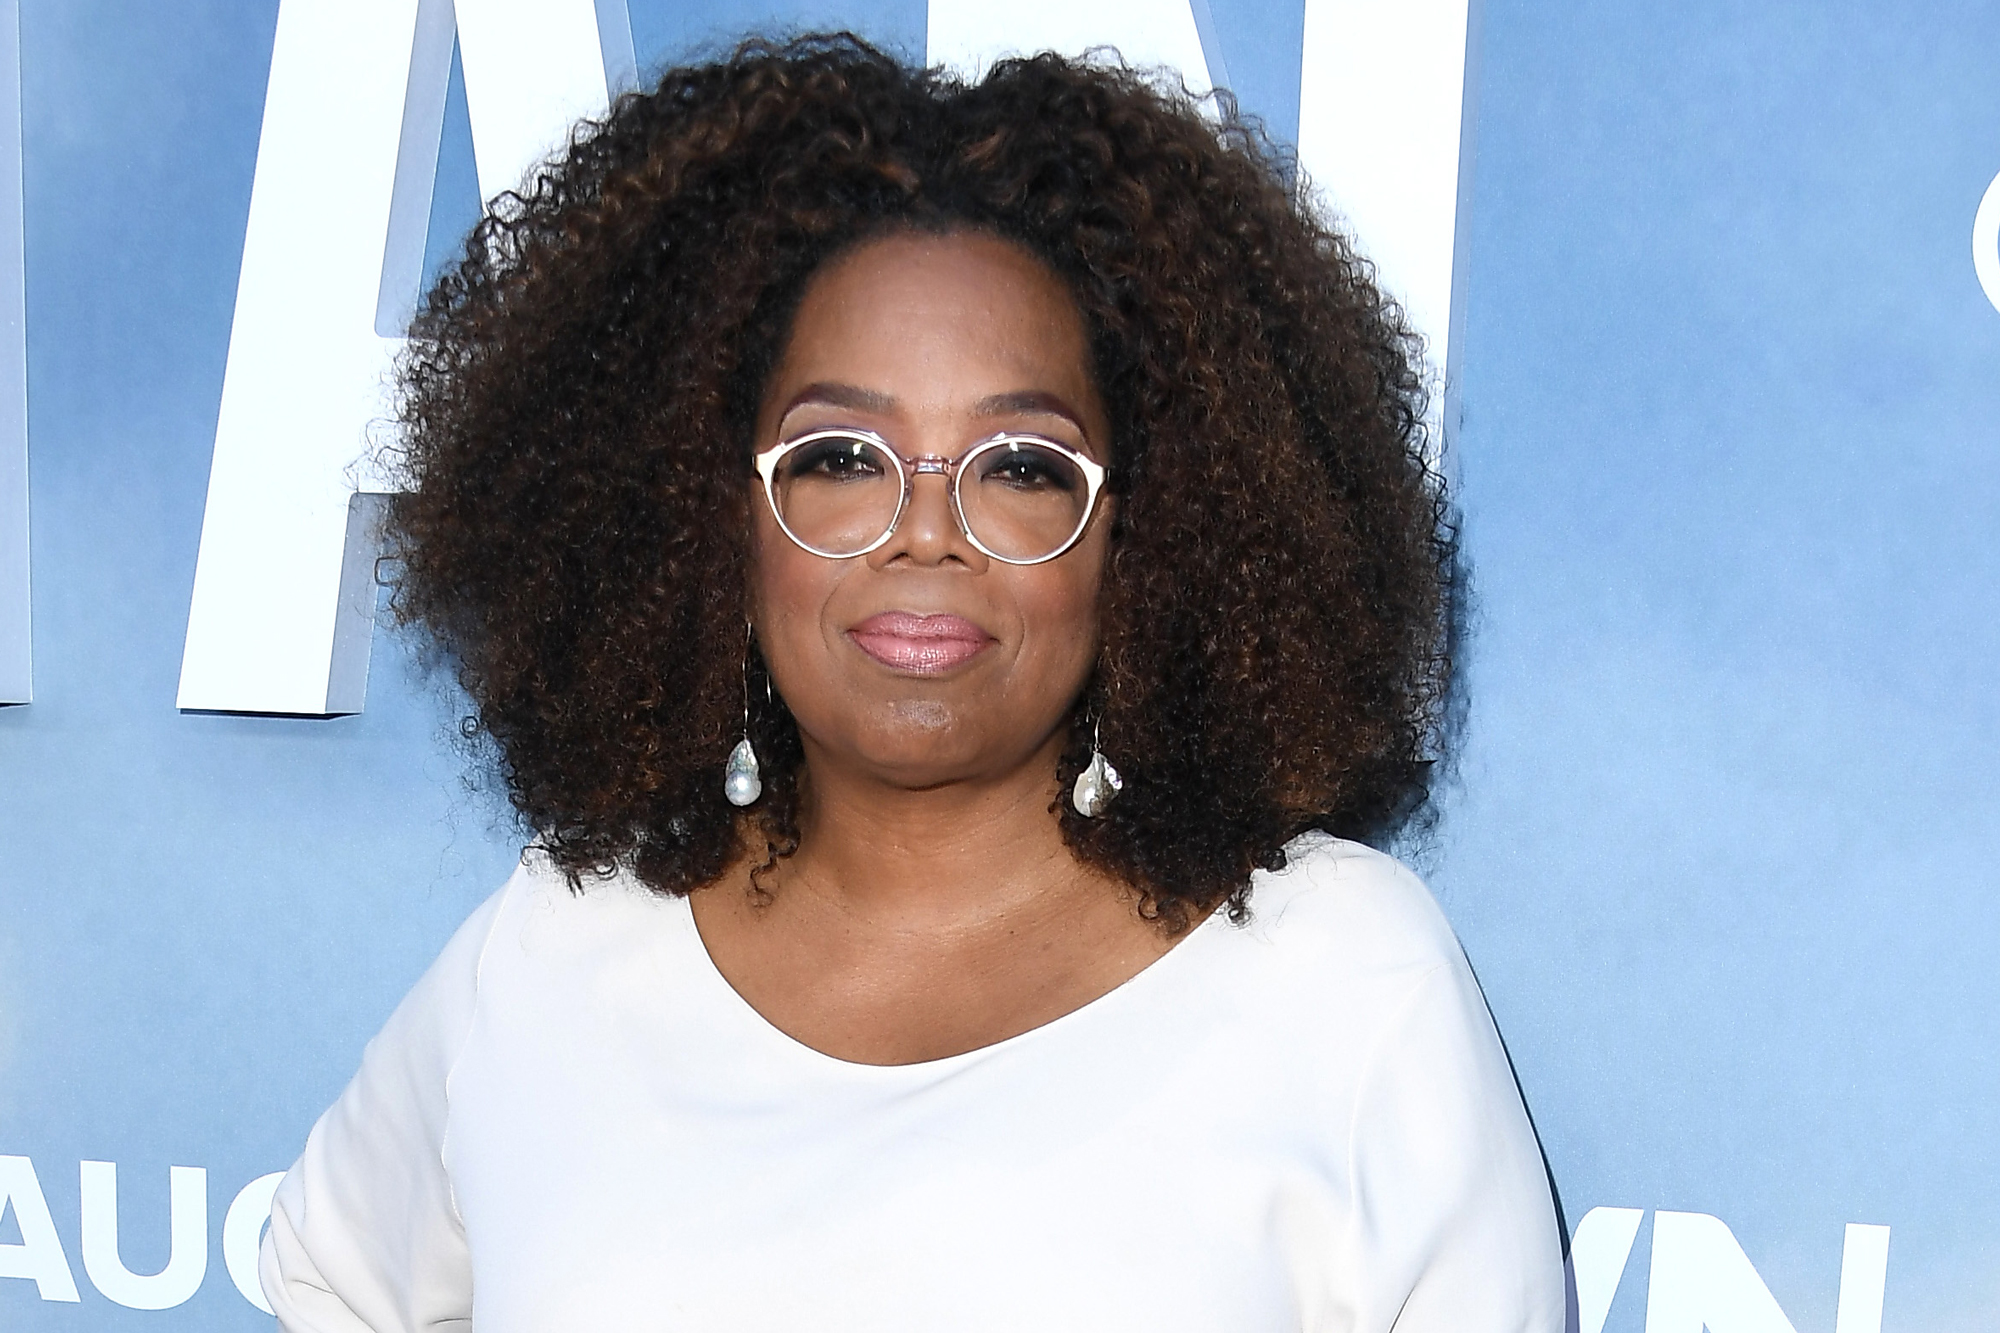 Oprah To Produce Documentary Aboutual Assault In Music